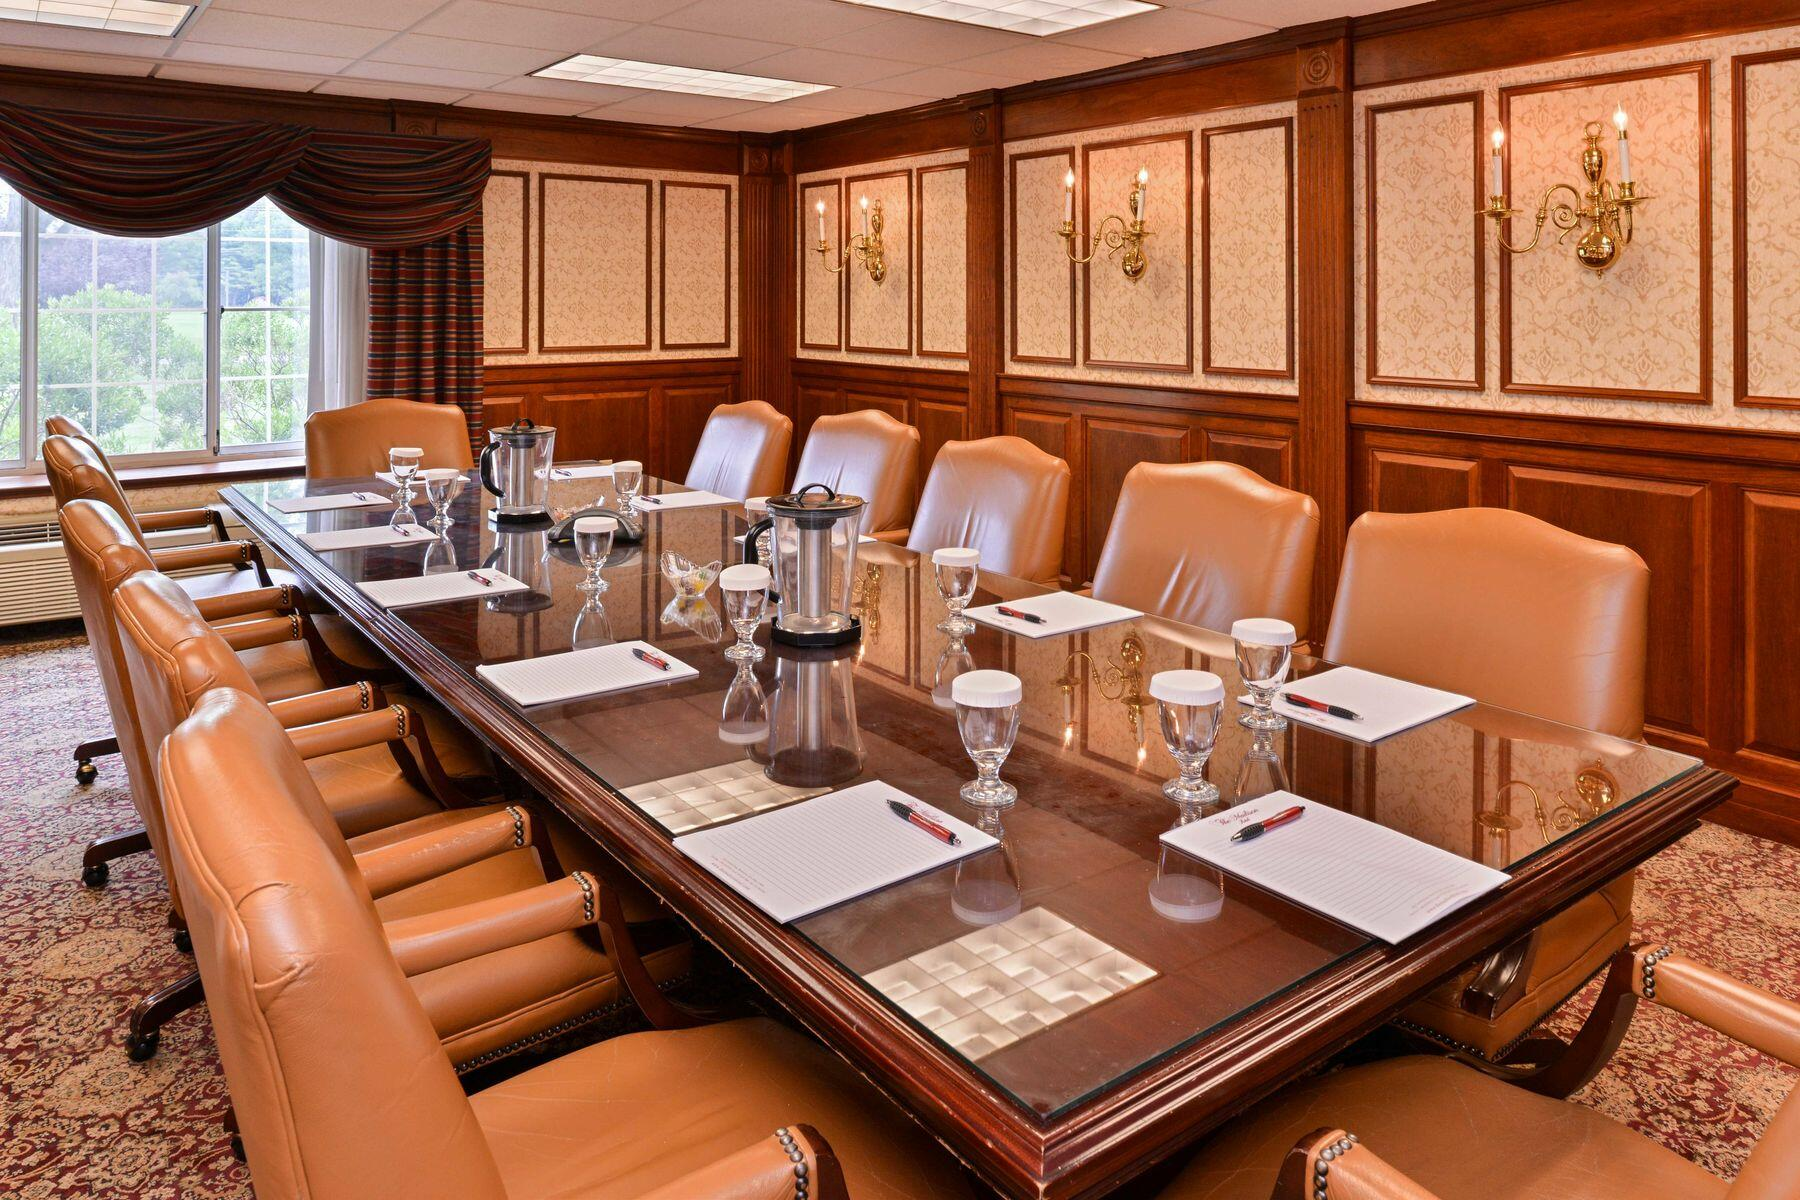 Board room with long table and executive chairs